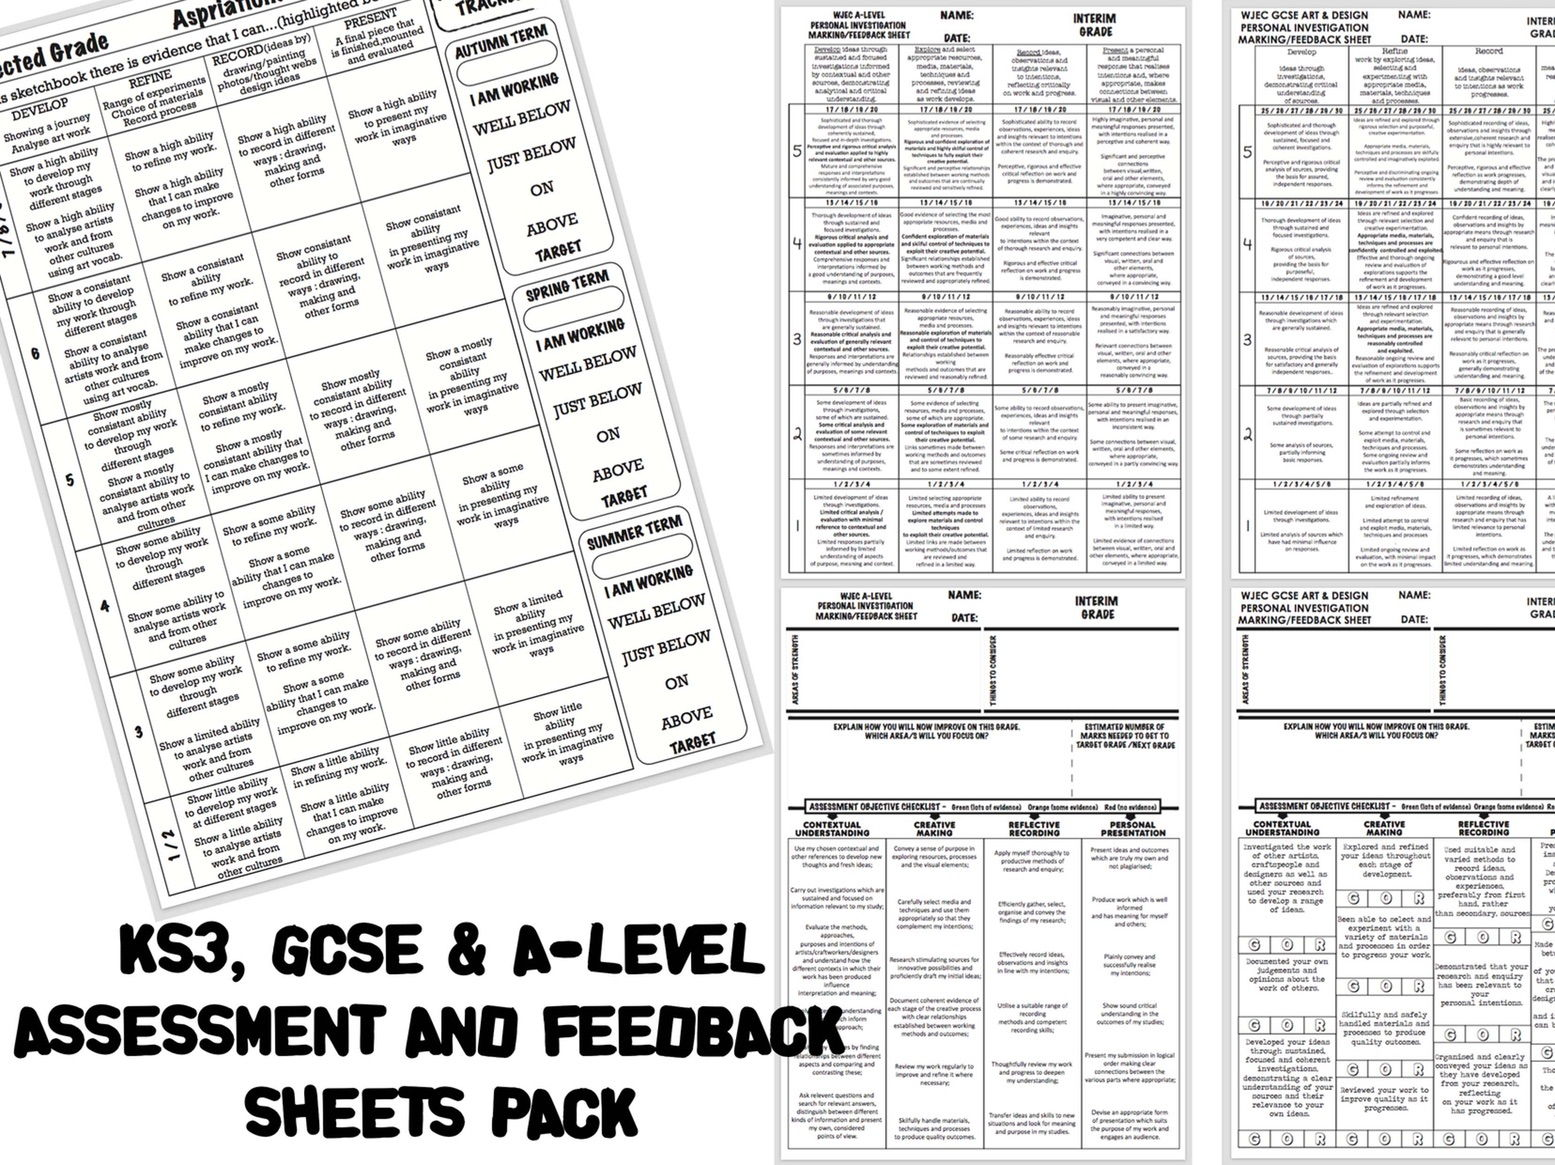 Complete KS3, GCSE & A-LEVEL ART ASSESSMENT/MARKING/FEEDBACK Pack